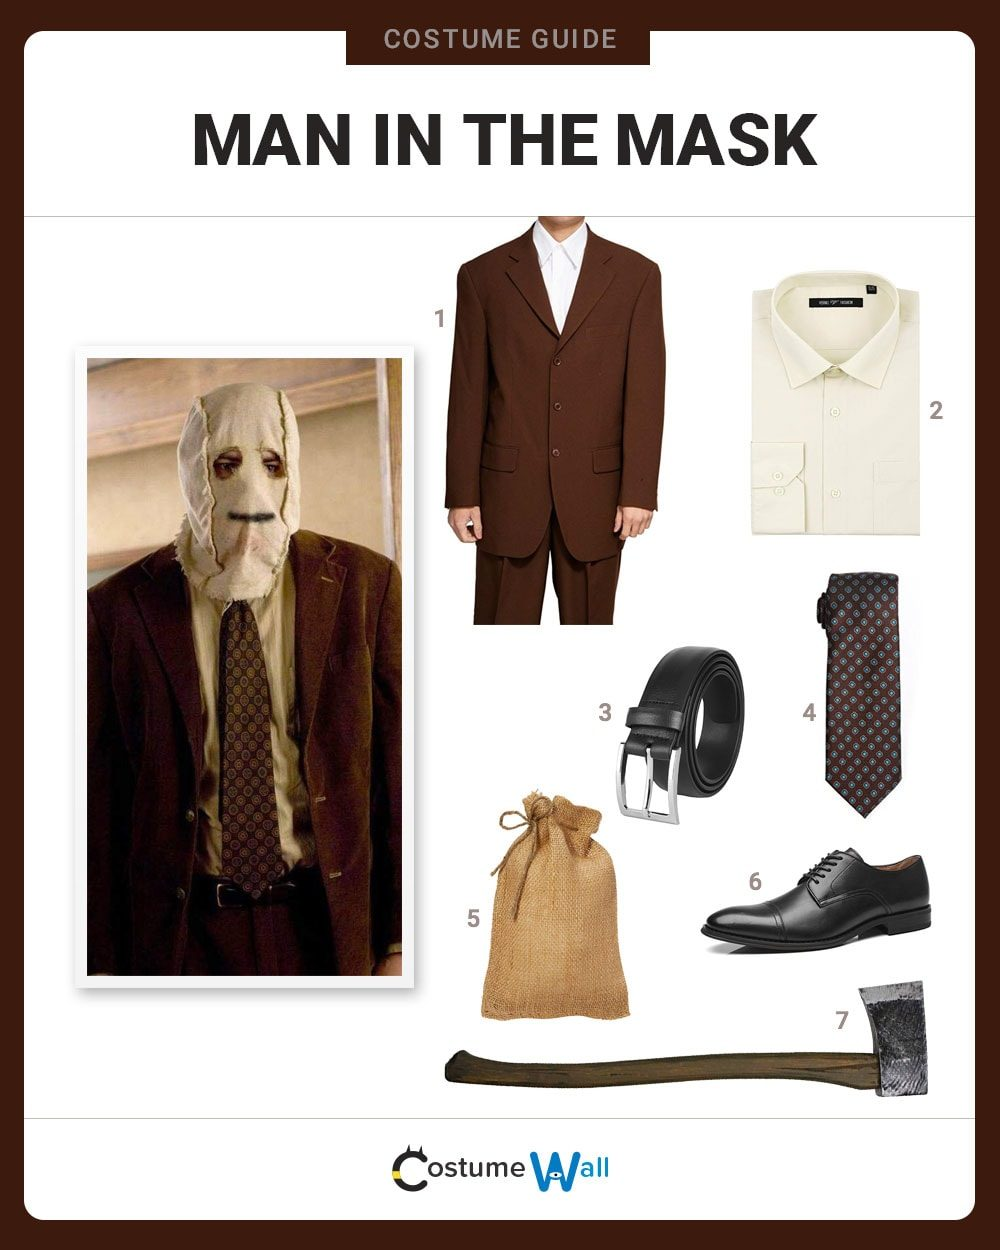 Man in the Mask Costume Guide